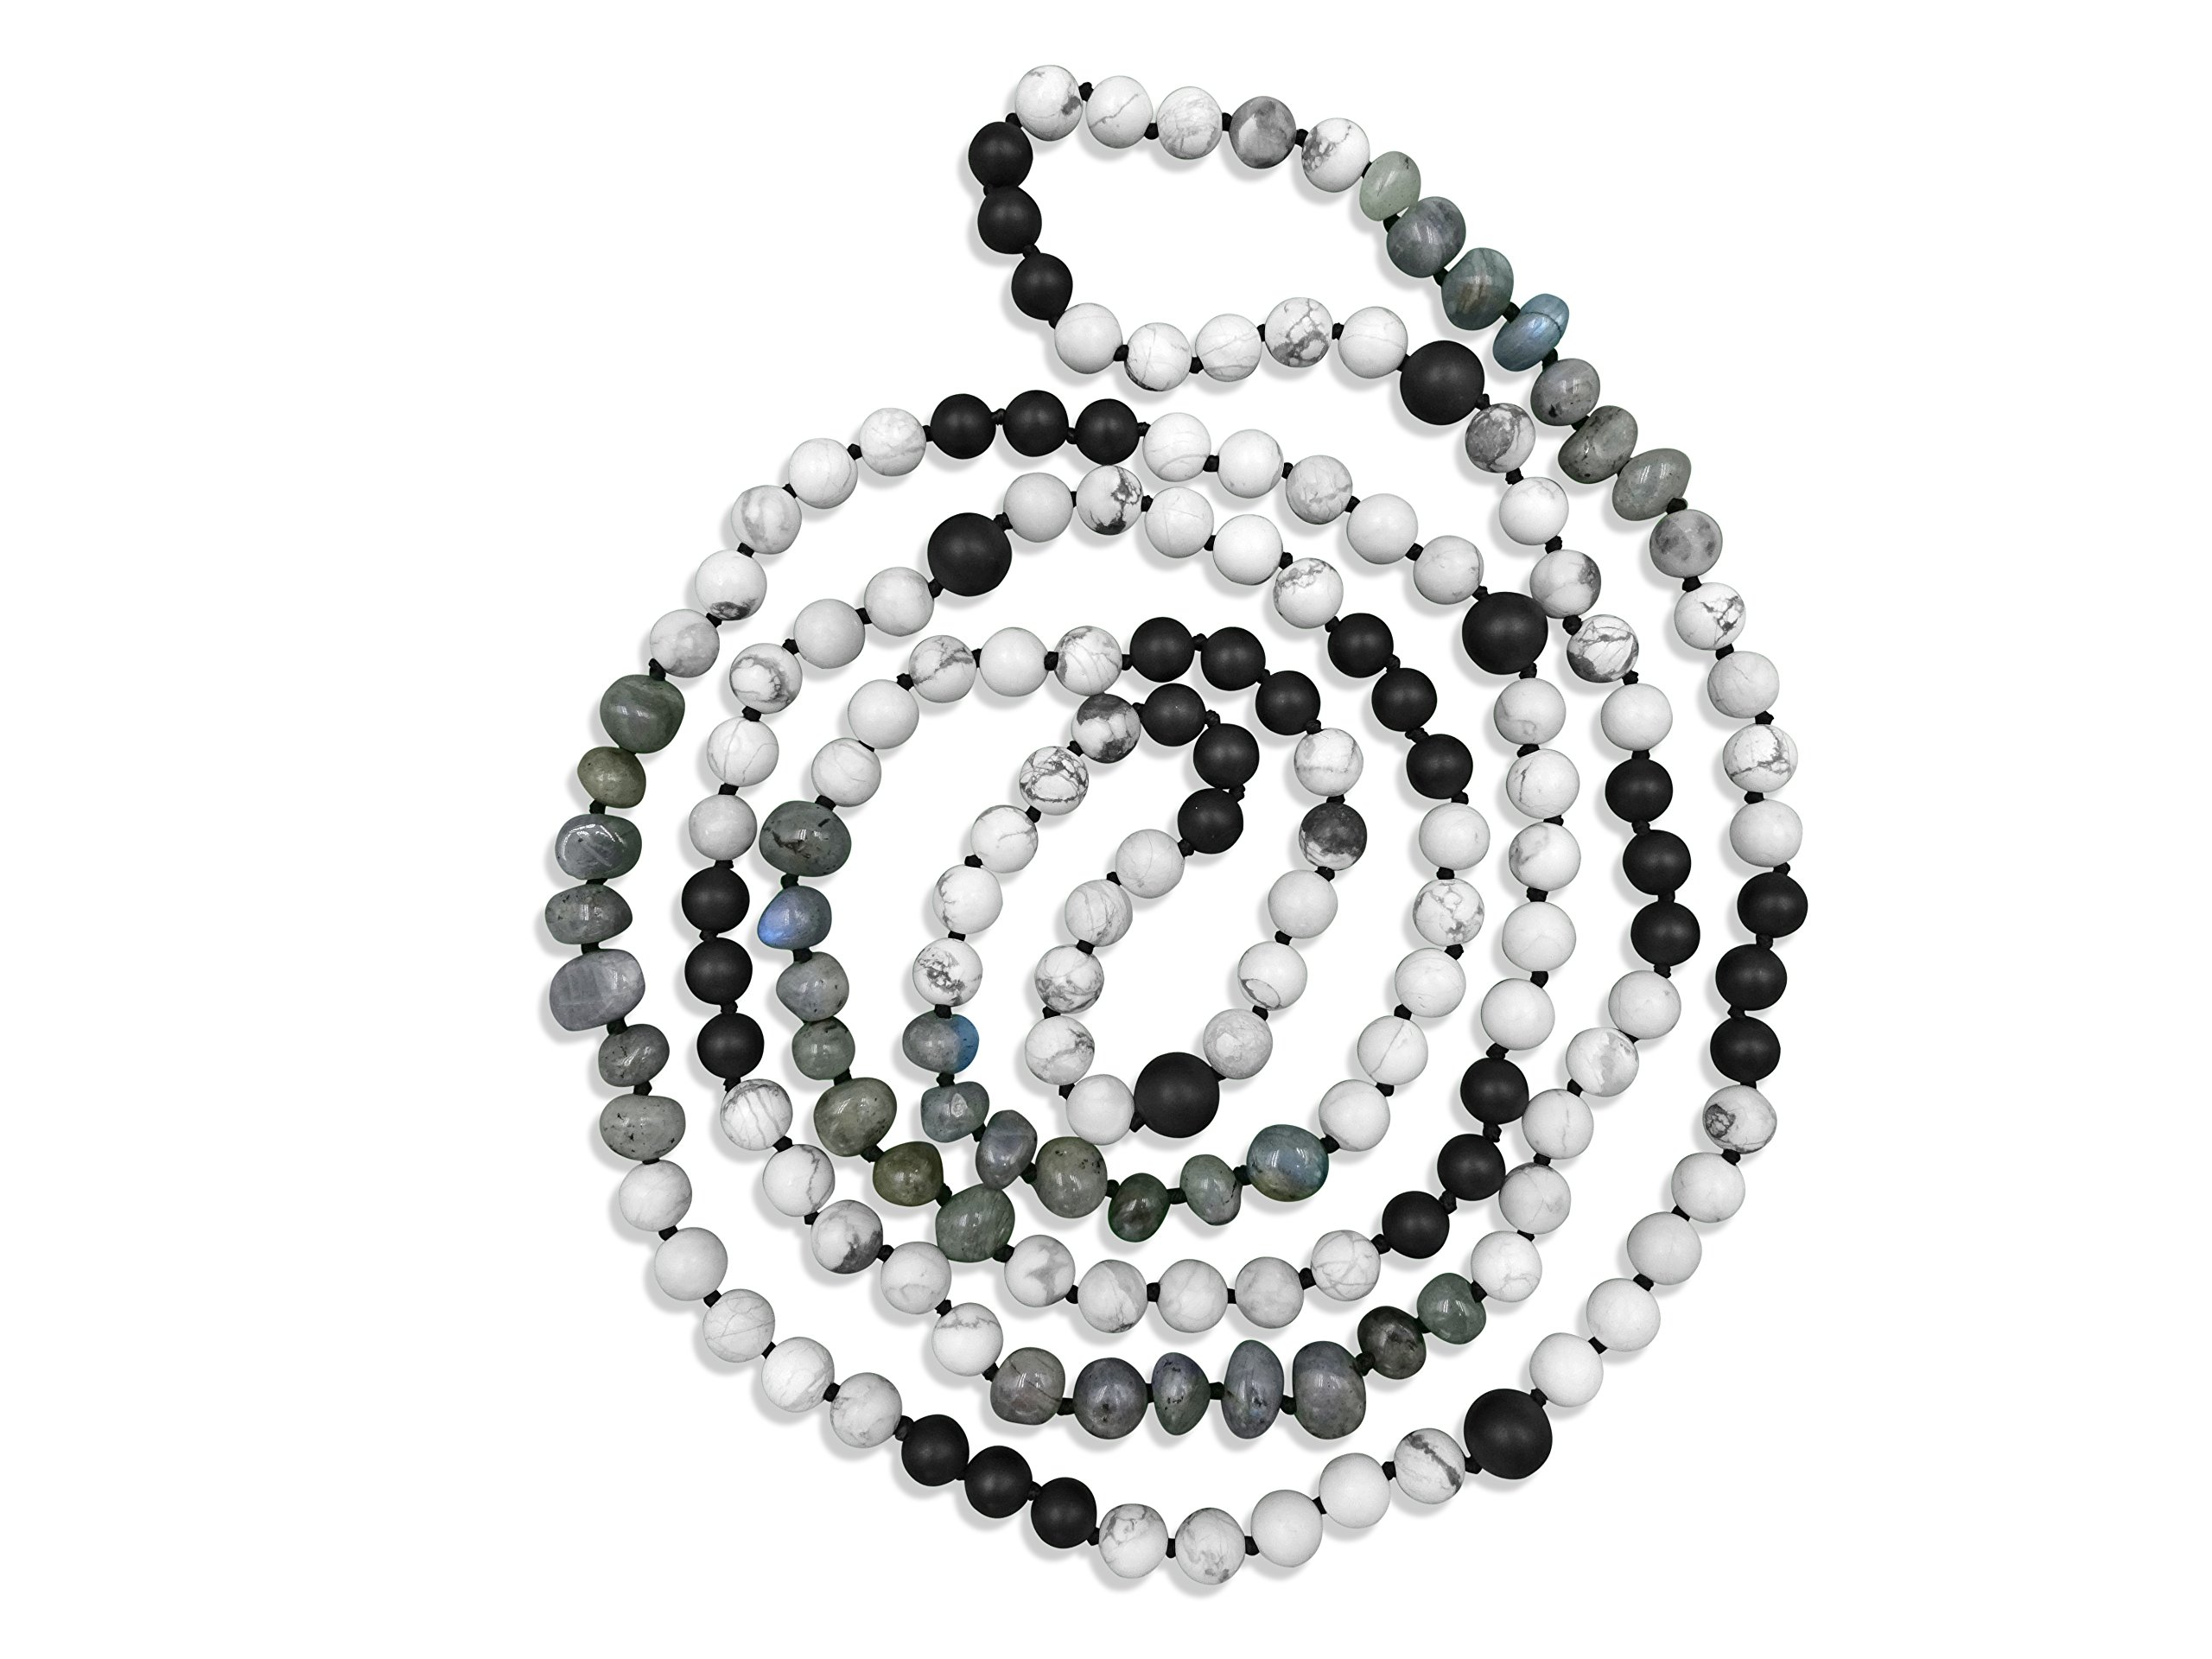 MGR 60 Inch 8MM Semi-precious Genuine Stone Black and White Long Endless Infinity Beaded Hand Knotted Strand Necklace.